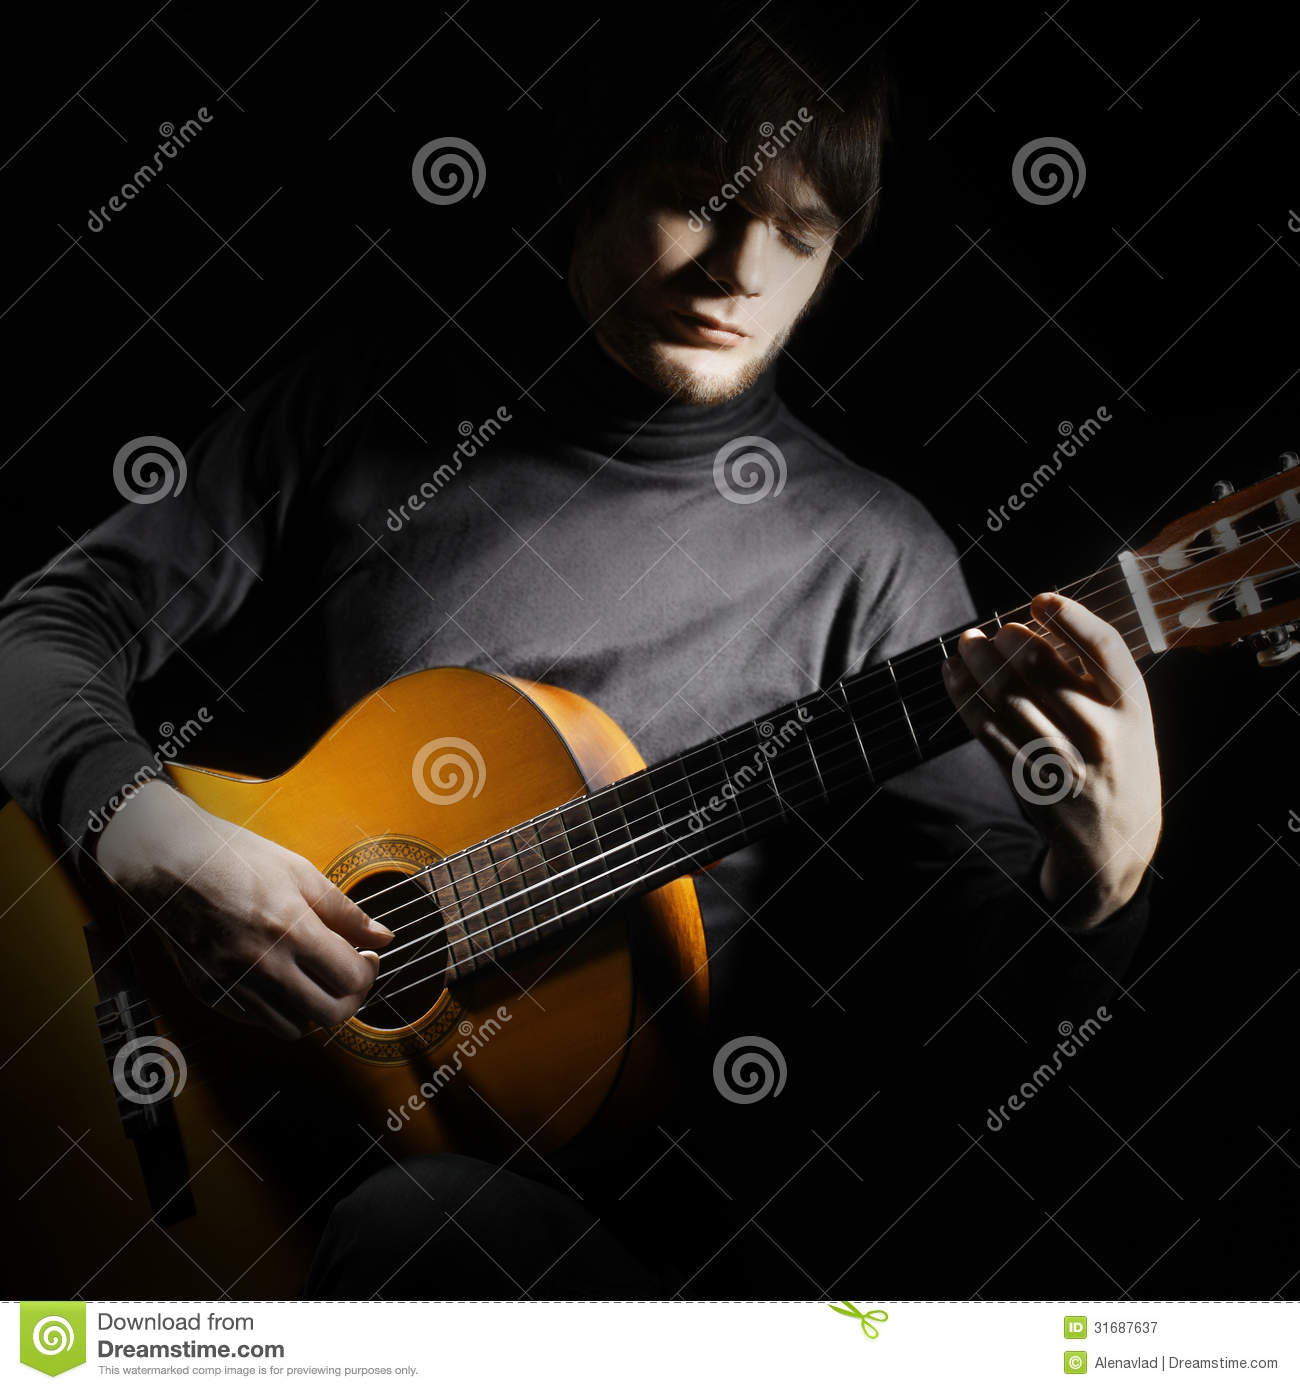 Guitar man. Acoustic guitarist classical musical instrument playing.